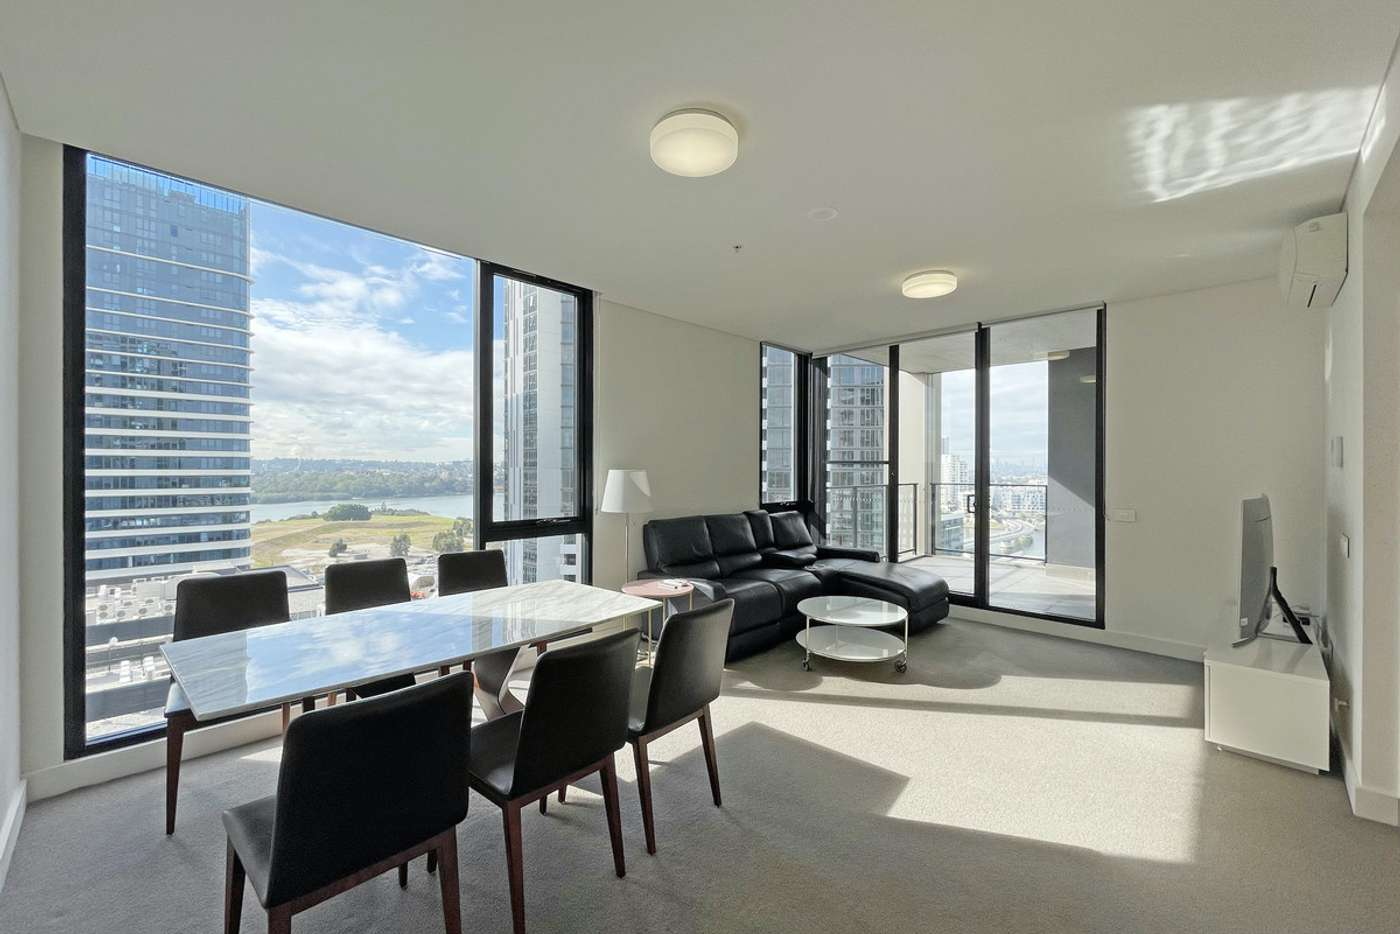 Main view of Homely apartment listing, 1509/46 Savona Drive, Wentworth Point NSW 2127